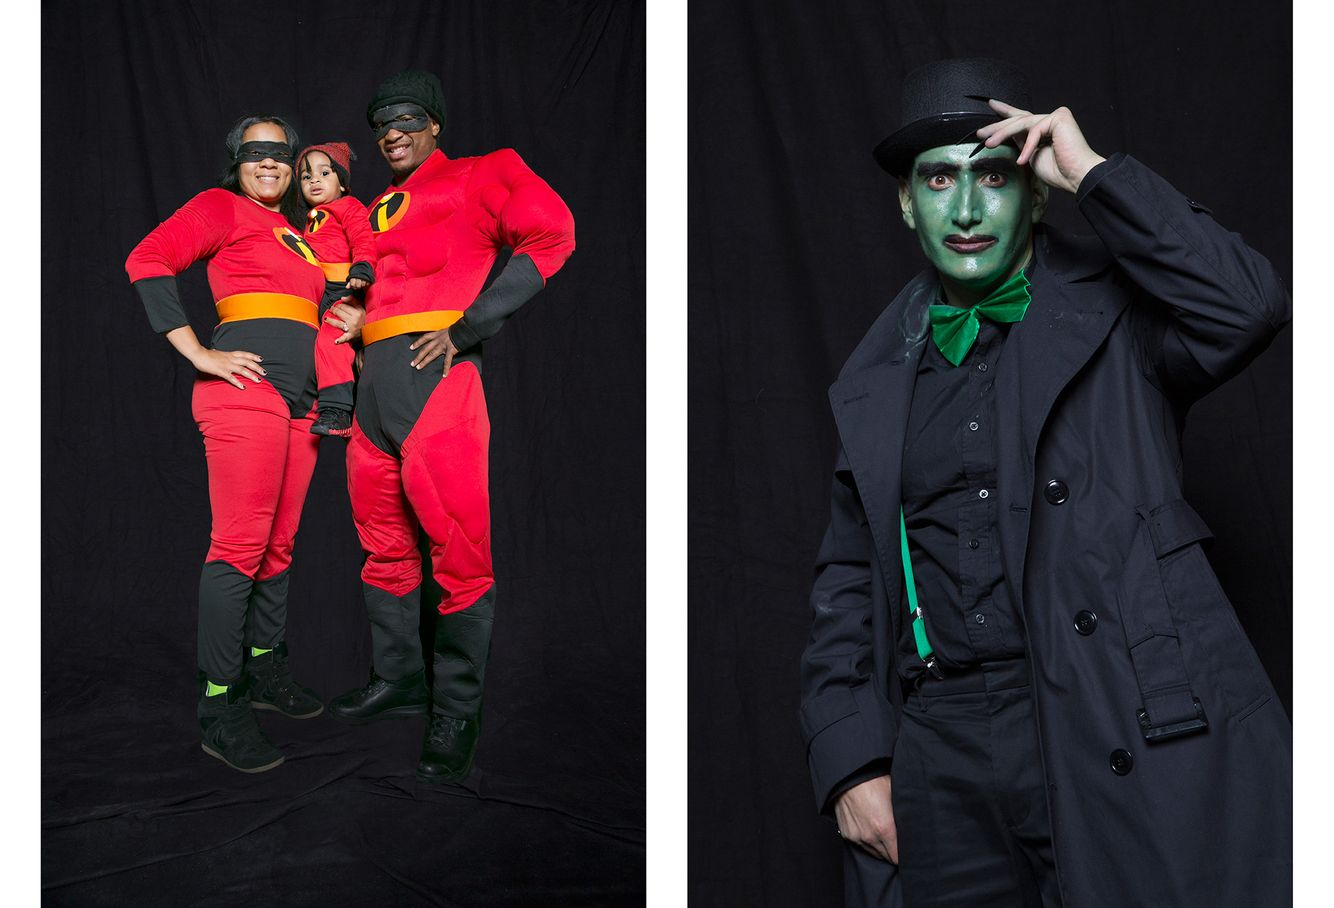 Halloween Photo Project - Hoboken, NJ.